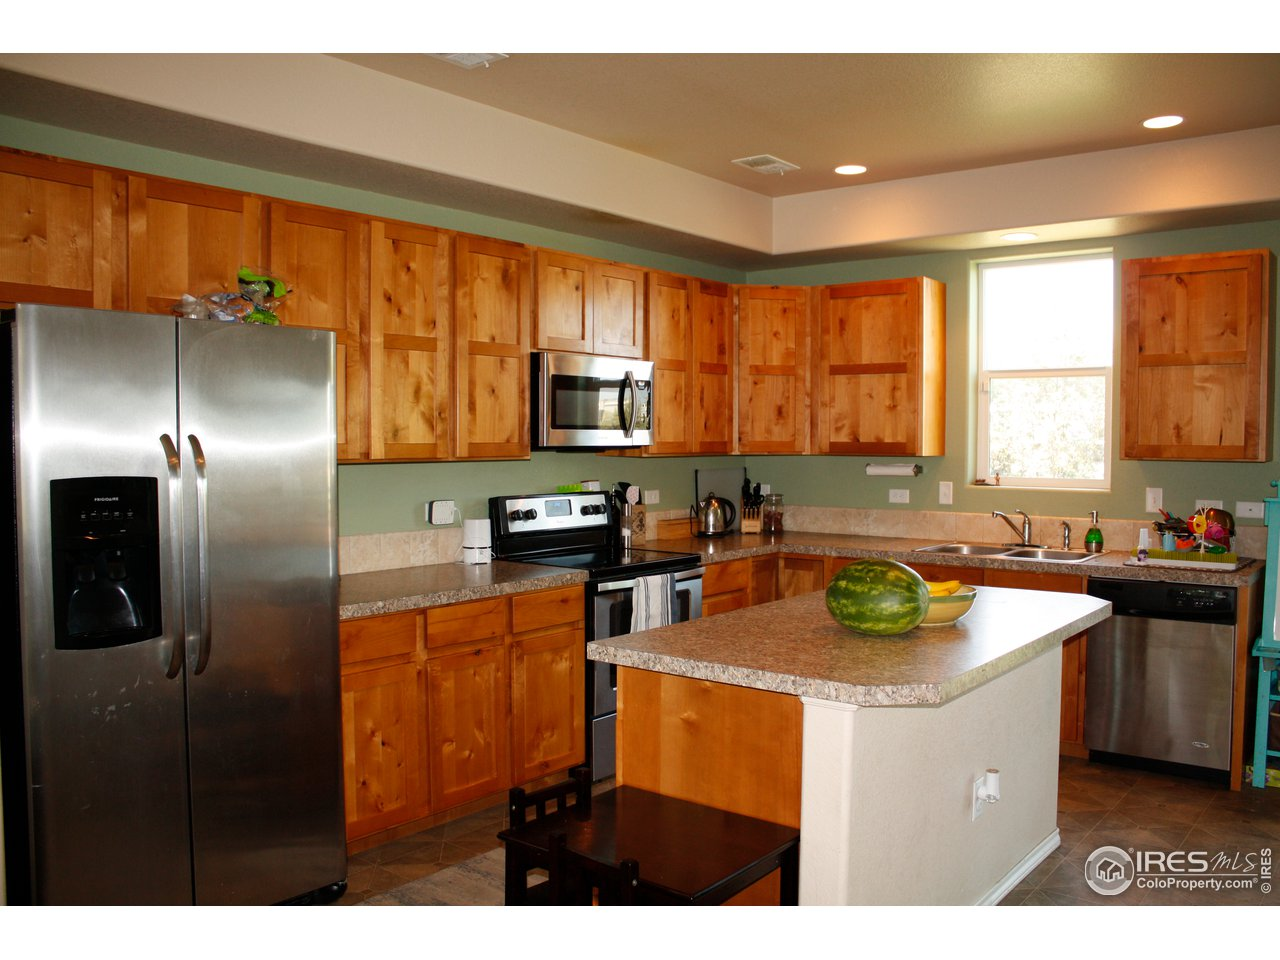 Kitchen with SS appliances and Knotty Alder cabinets